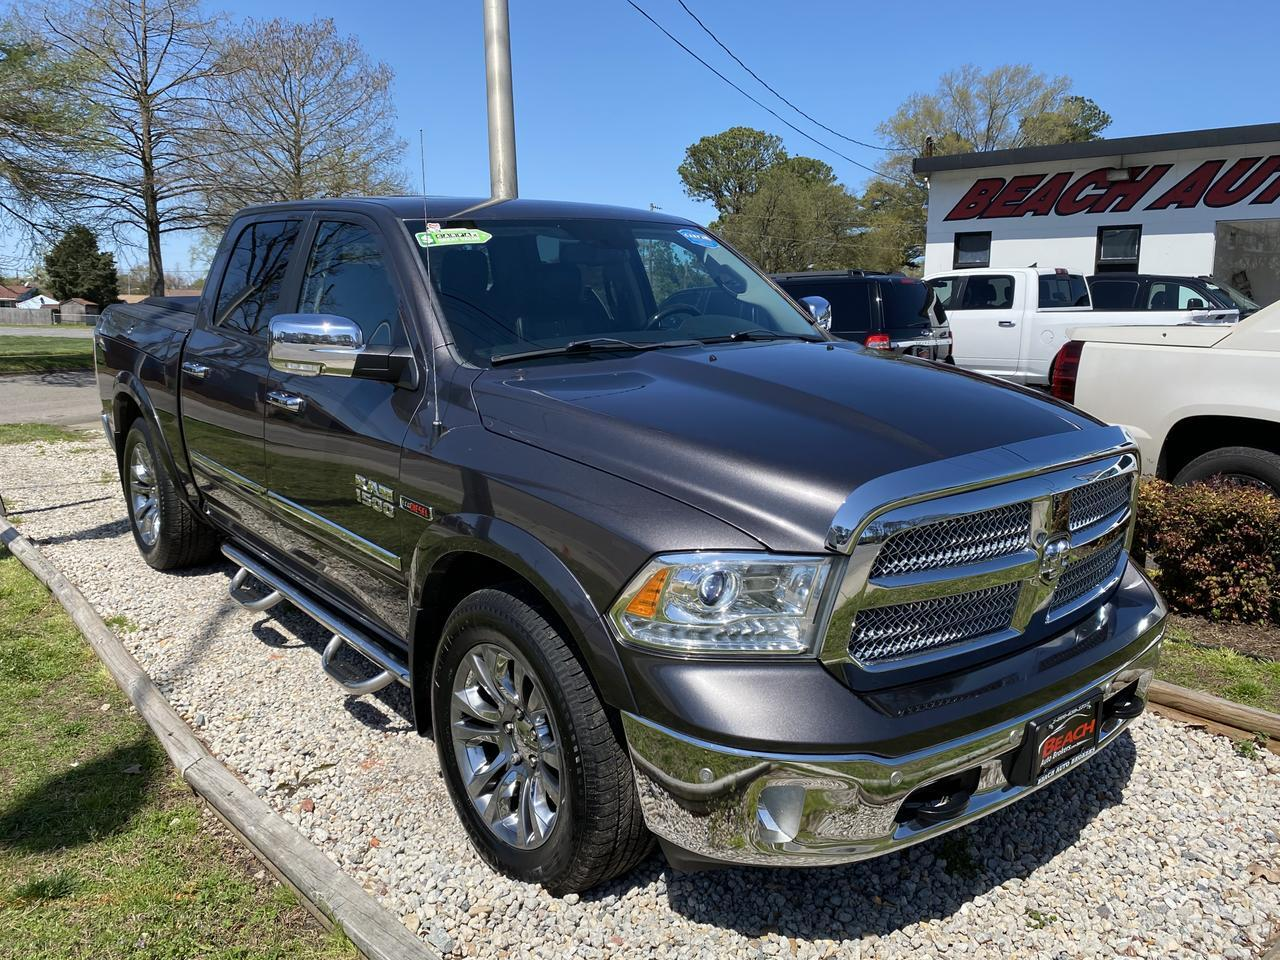 2015 DODGE RAM 1500 LARAMIE LIMITED CREW CAB 4X4, WARRANTY, ECODIESEL, LEATHER, BACKUP CAM, PARKING SENSORS, CLEAN! Norfolk VA